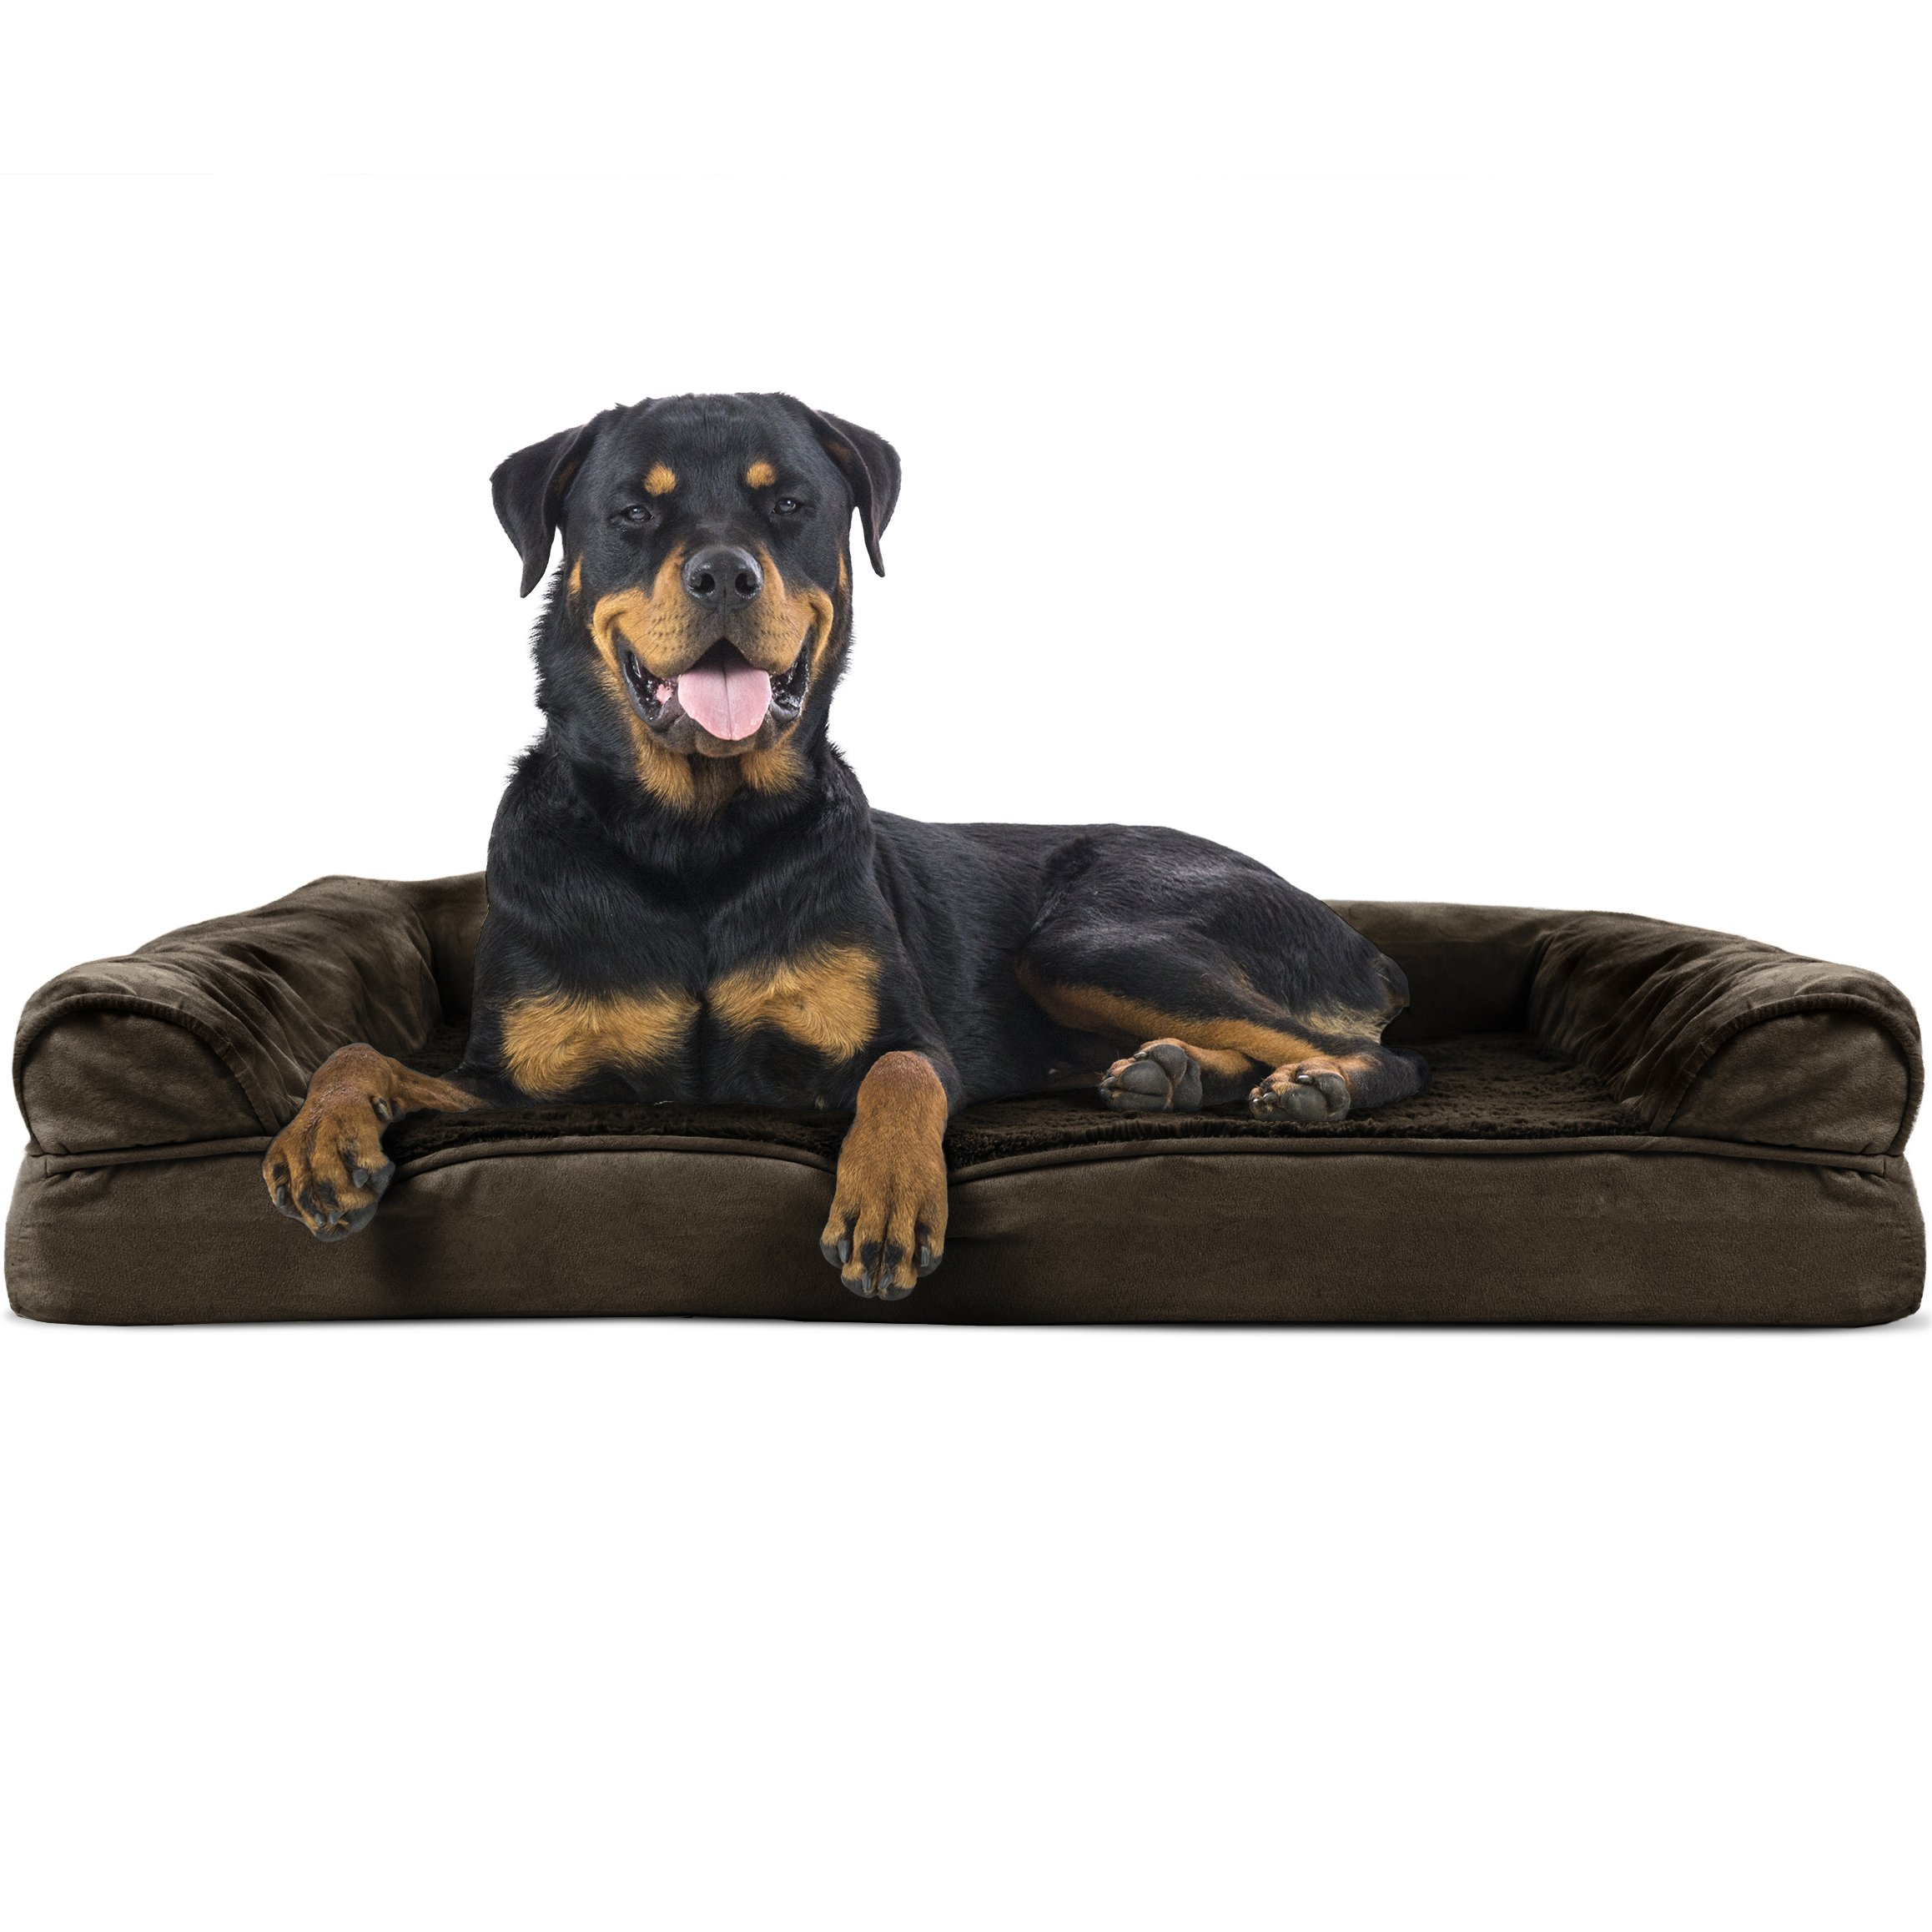 FurHaven Orthopedic Ultra Plush Sofa-Style Couch Pet Bed Dogs Cats, Espresso, Jumbo